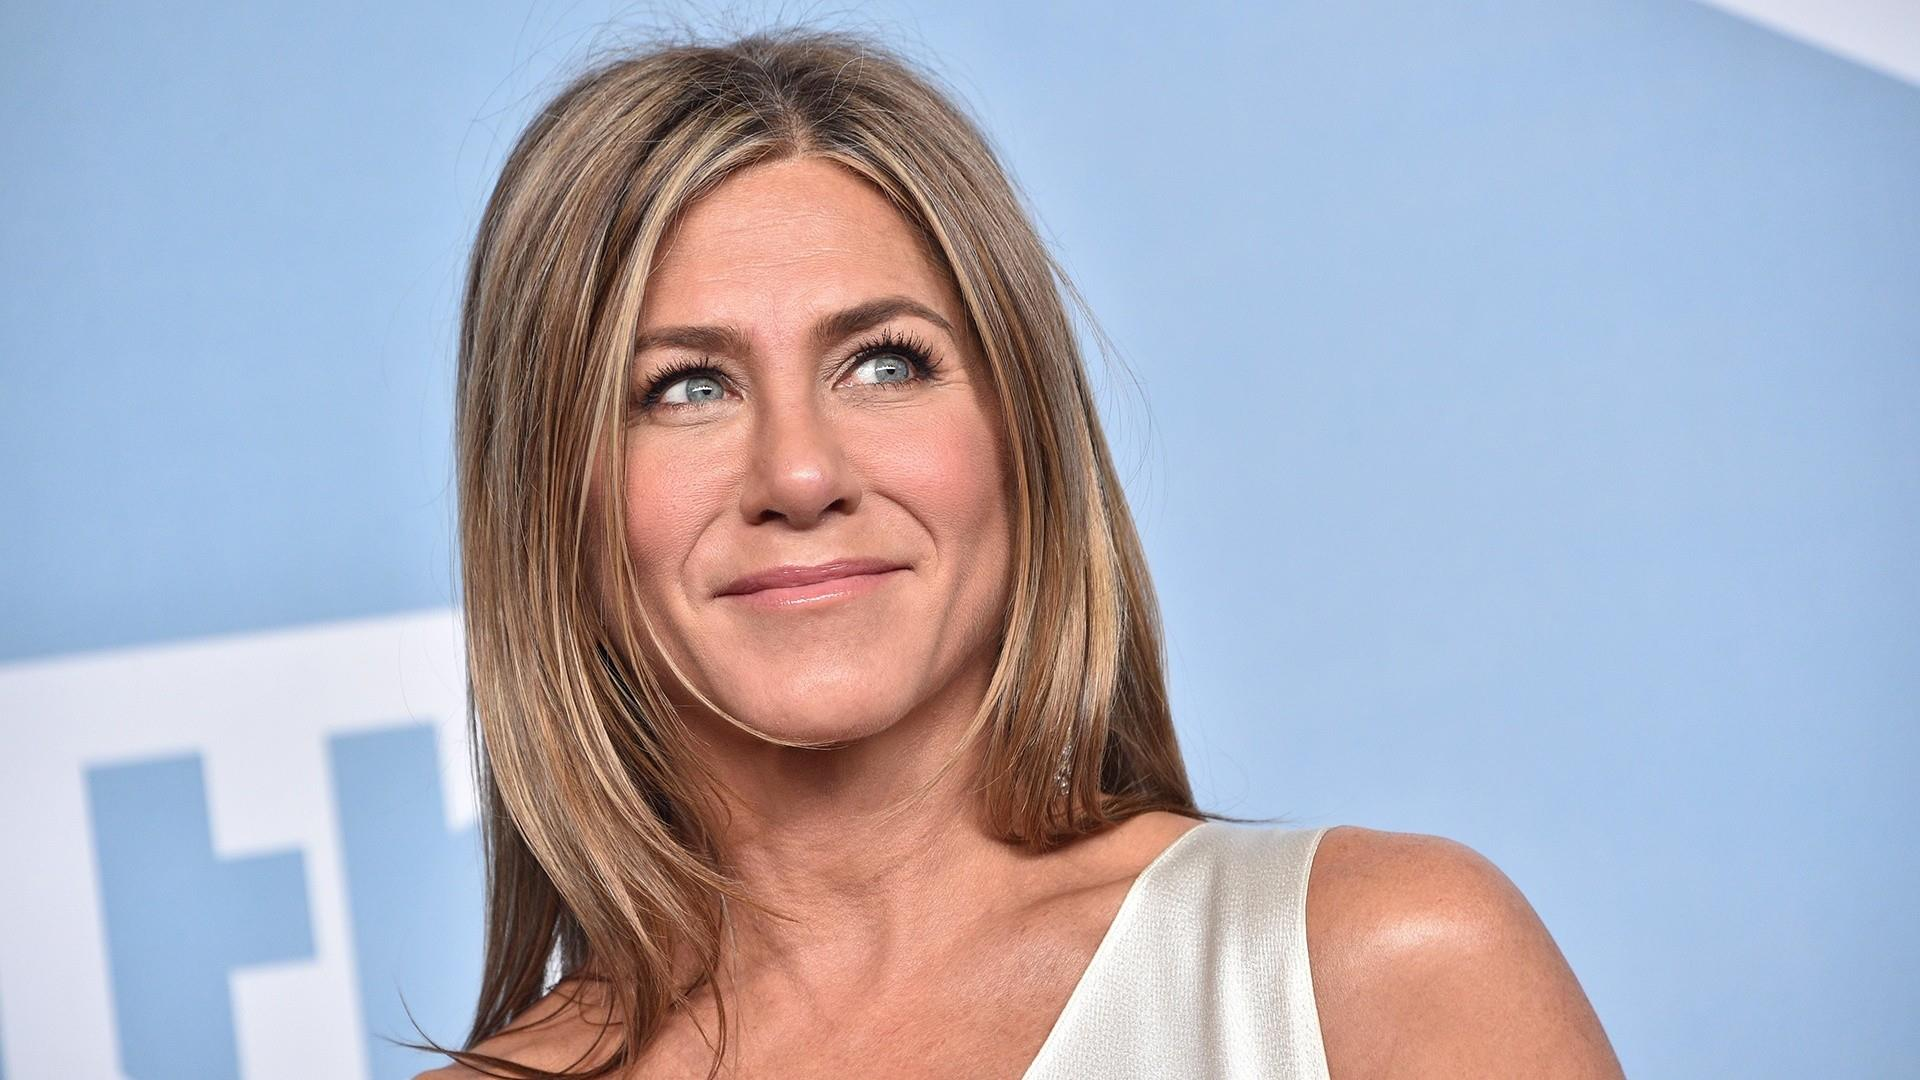 Jennifer Aniston is meeting Psychics and Astrologers to Find True Love in her Life?